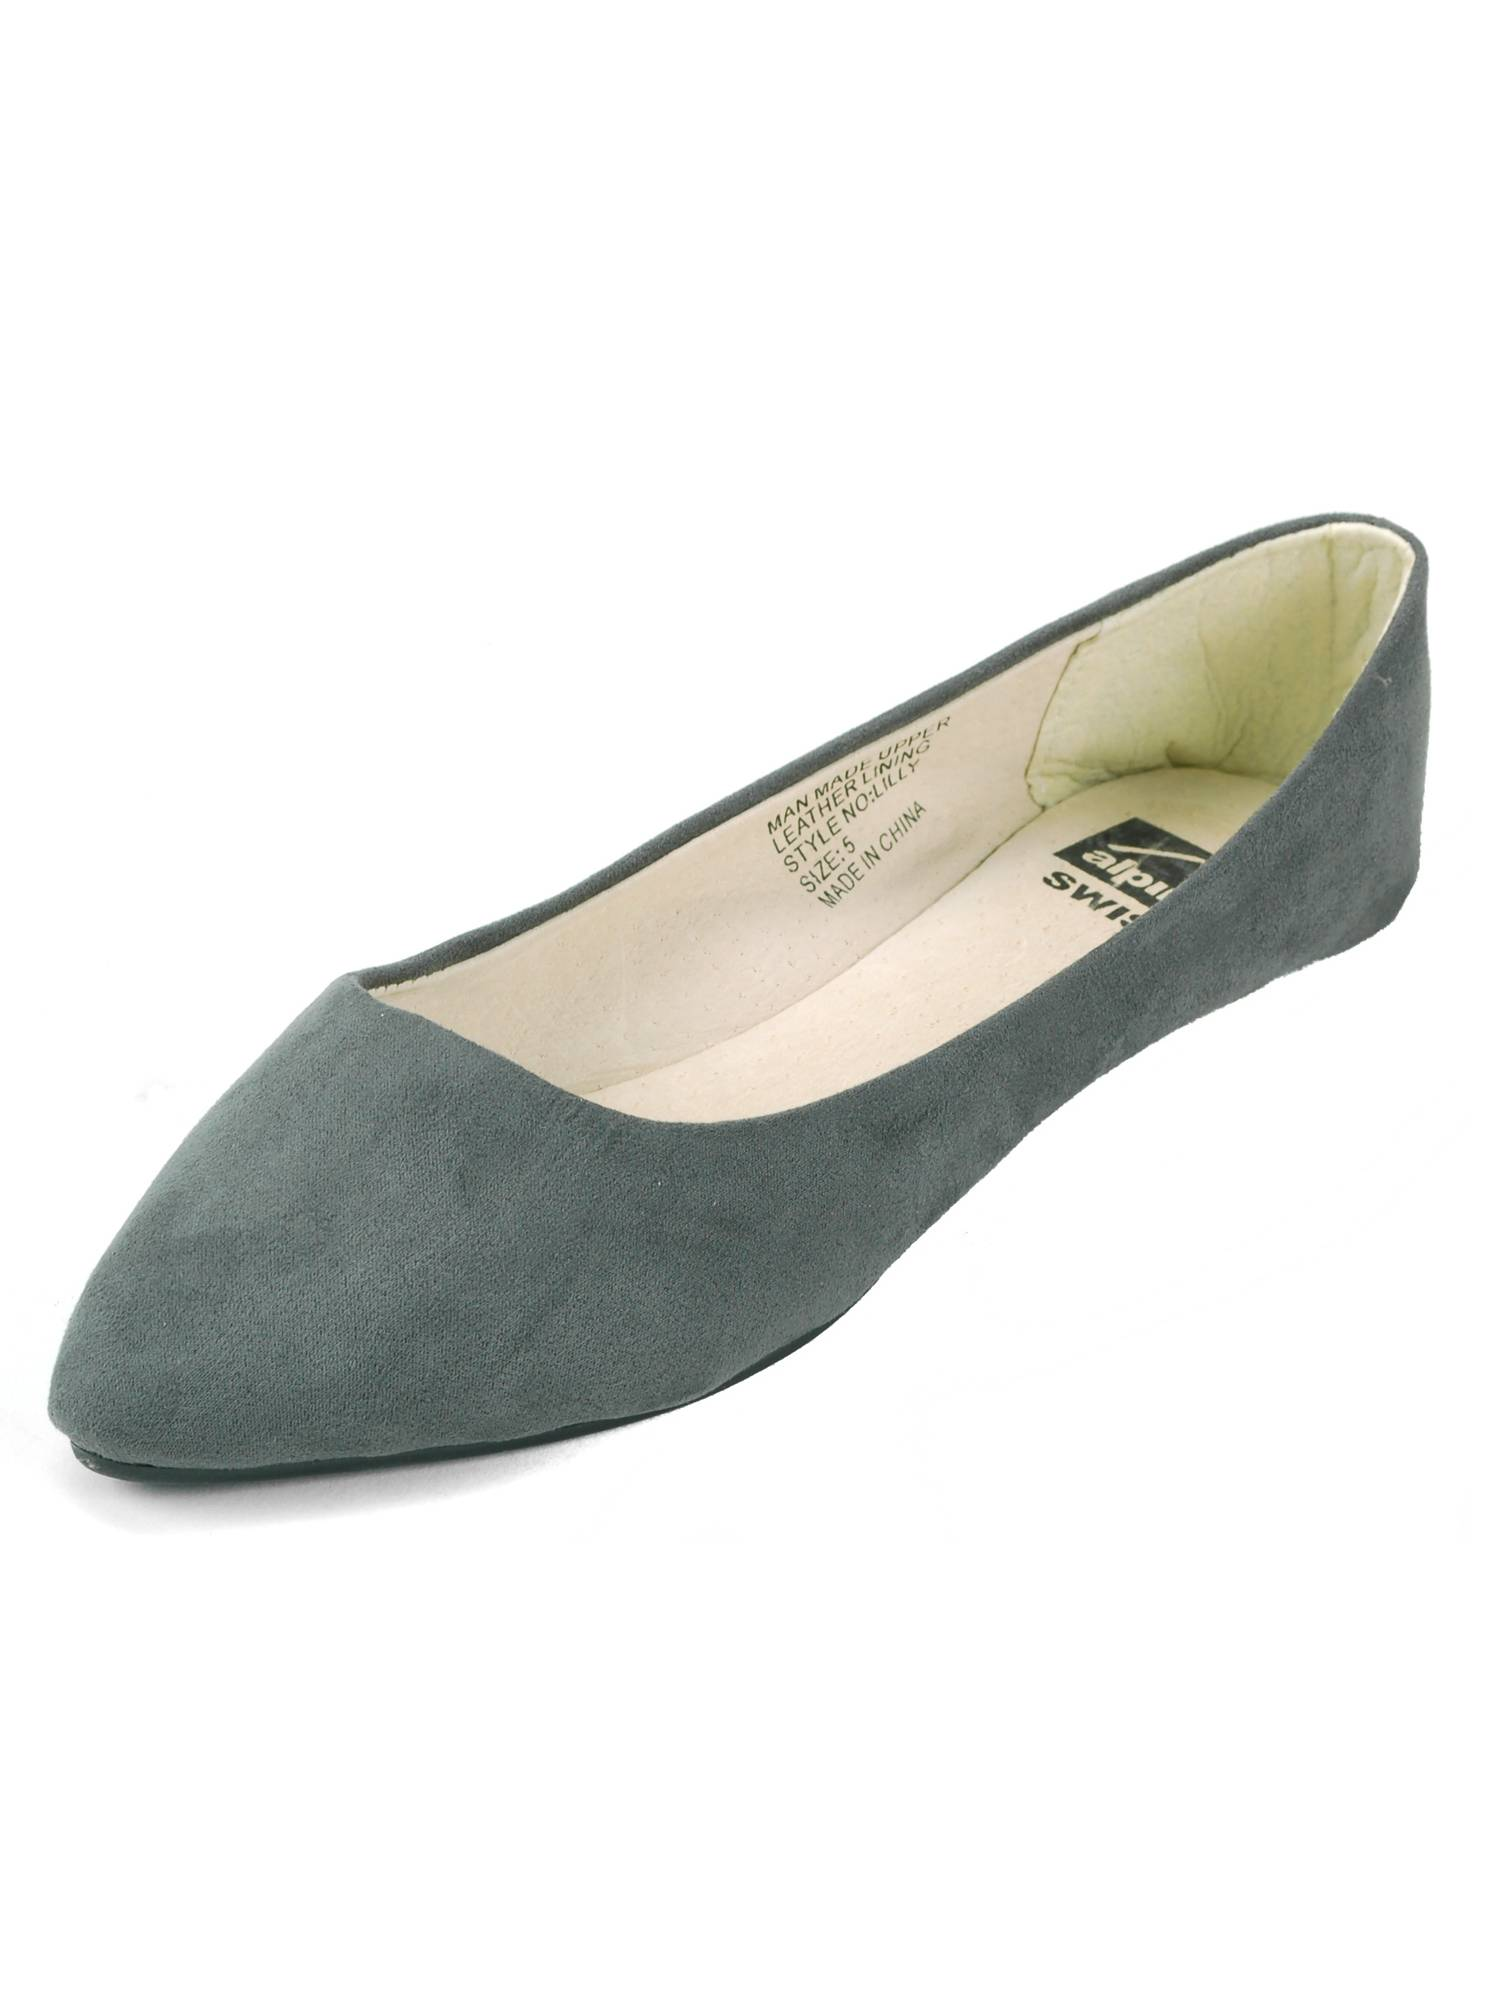 Alpine Swiss Lilly Women's Ballet Flats Pointed Toe Suede Lined Microsuede Shoes by alpine swiss